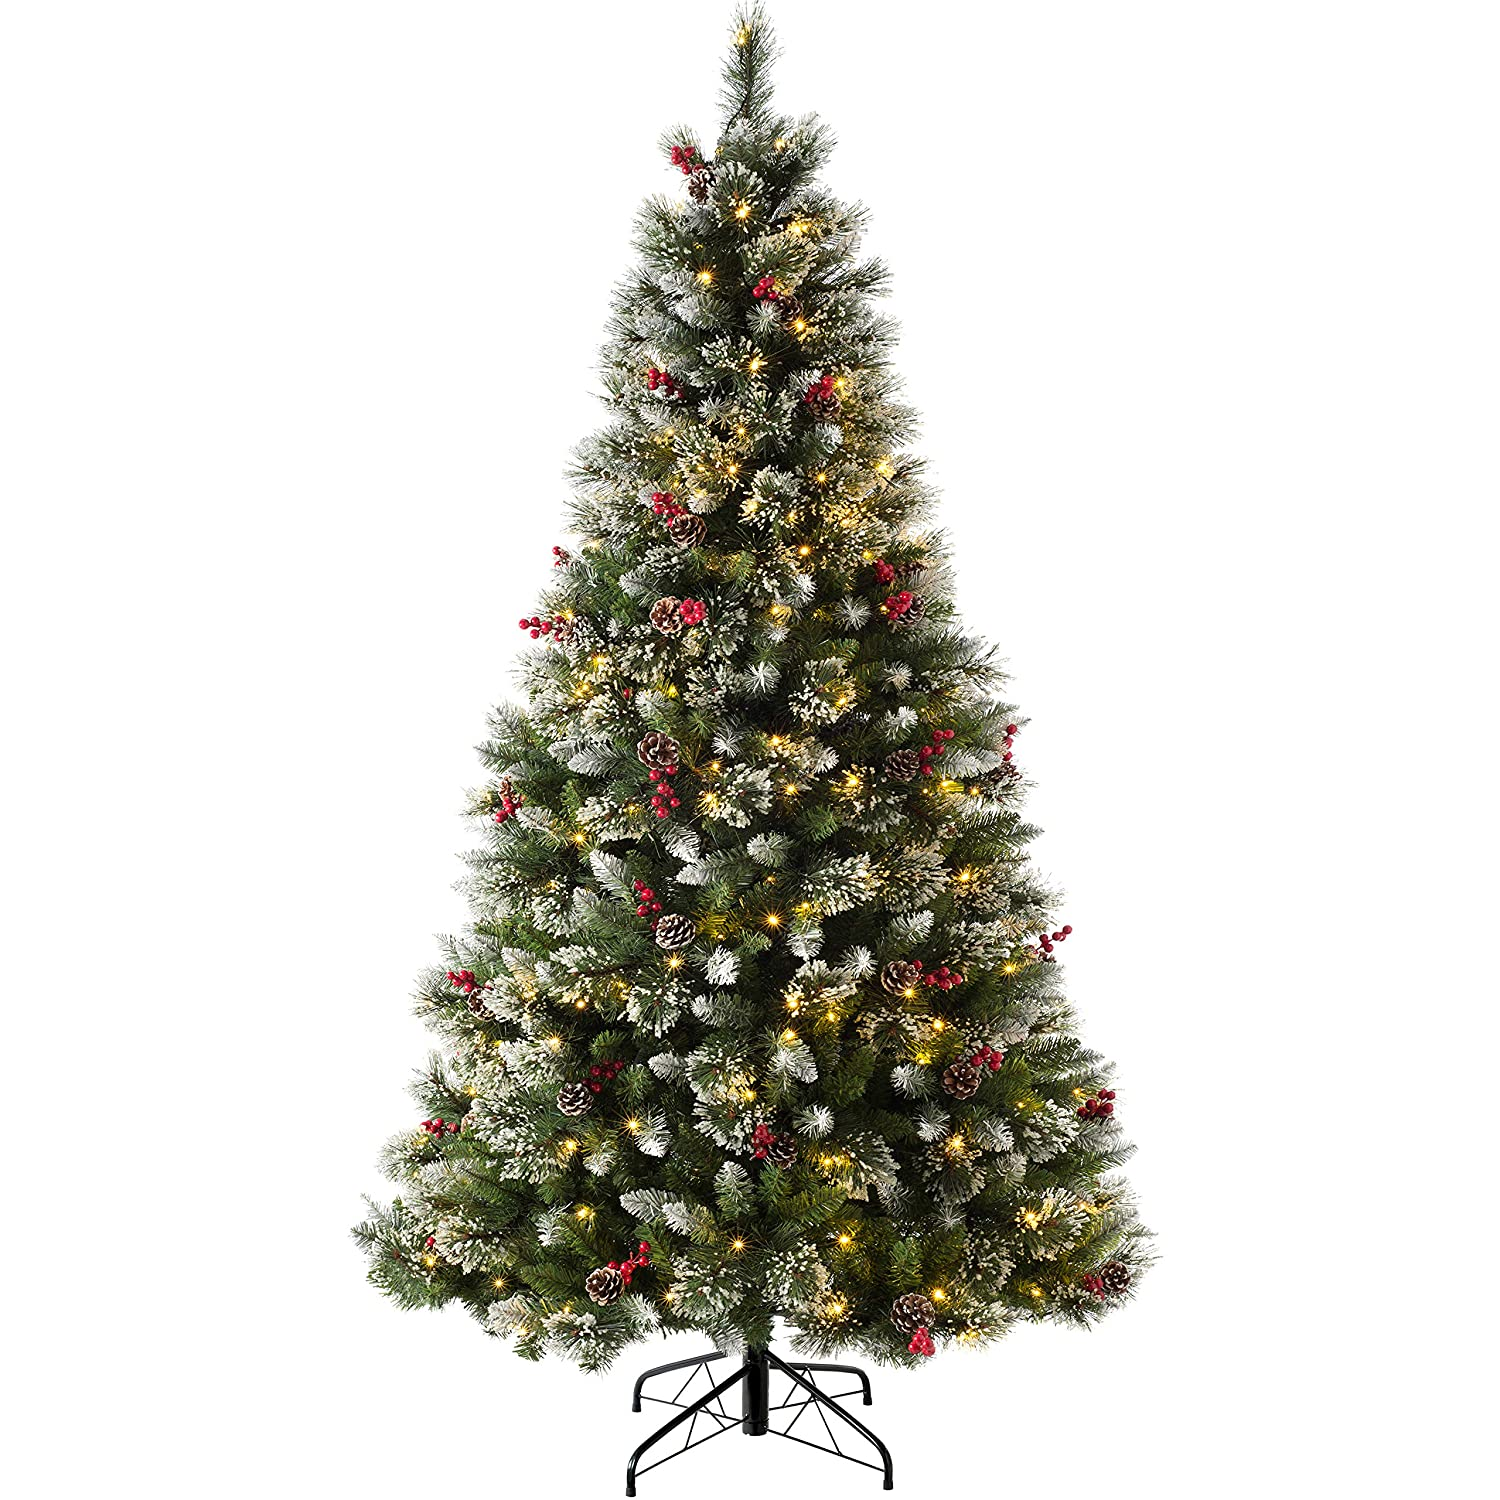 Star Trading Ottawa 7ft White Pine Artificial Christmas Tree with 260 Warm White